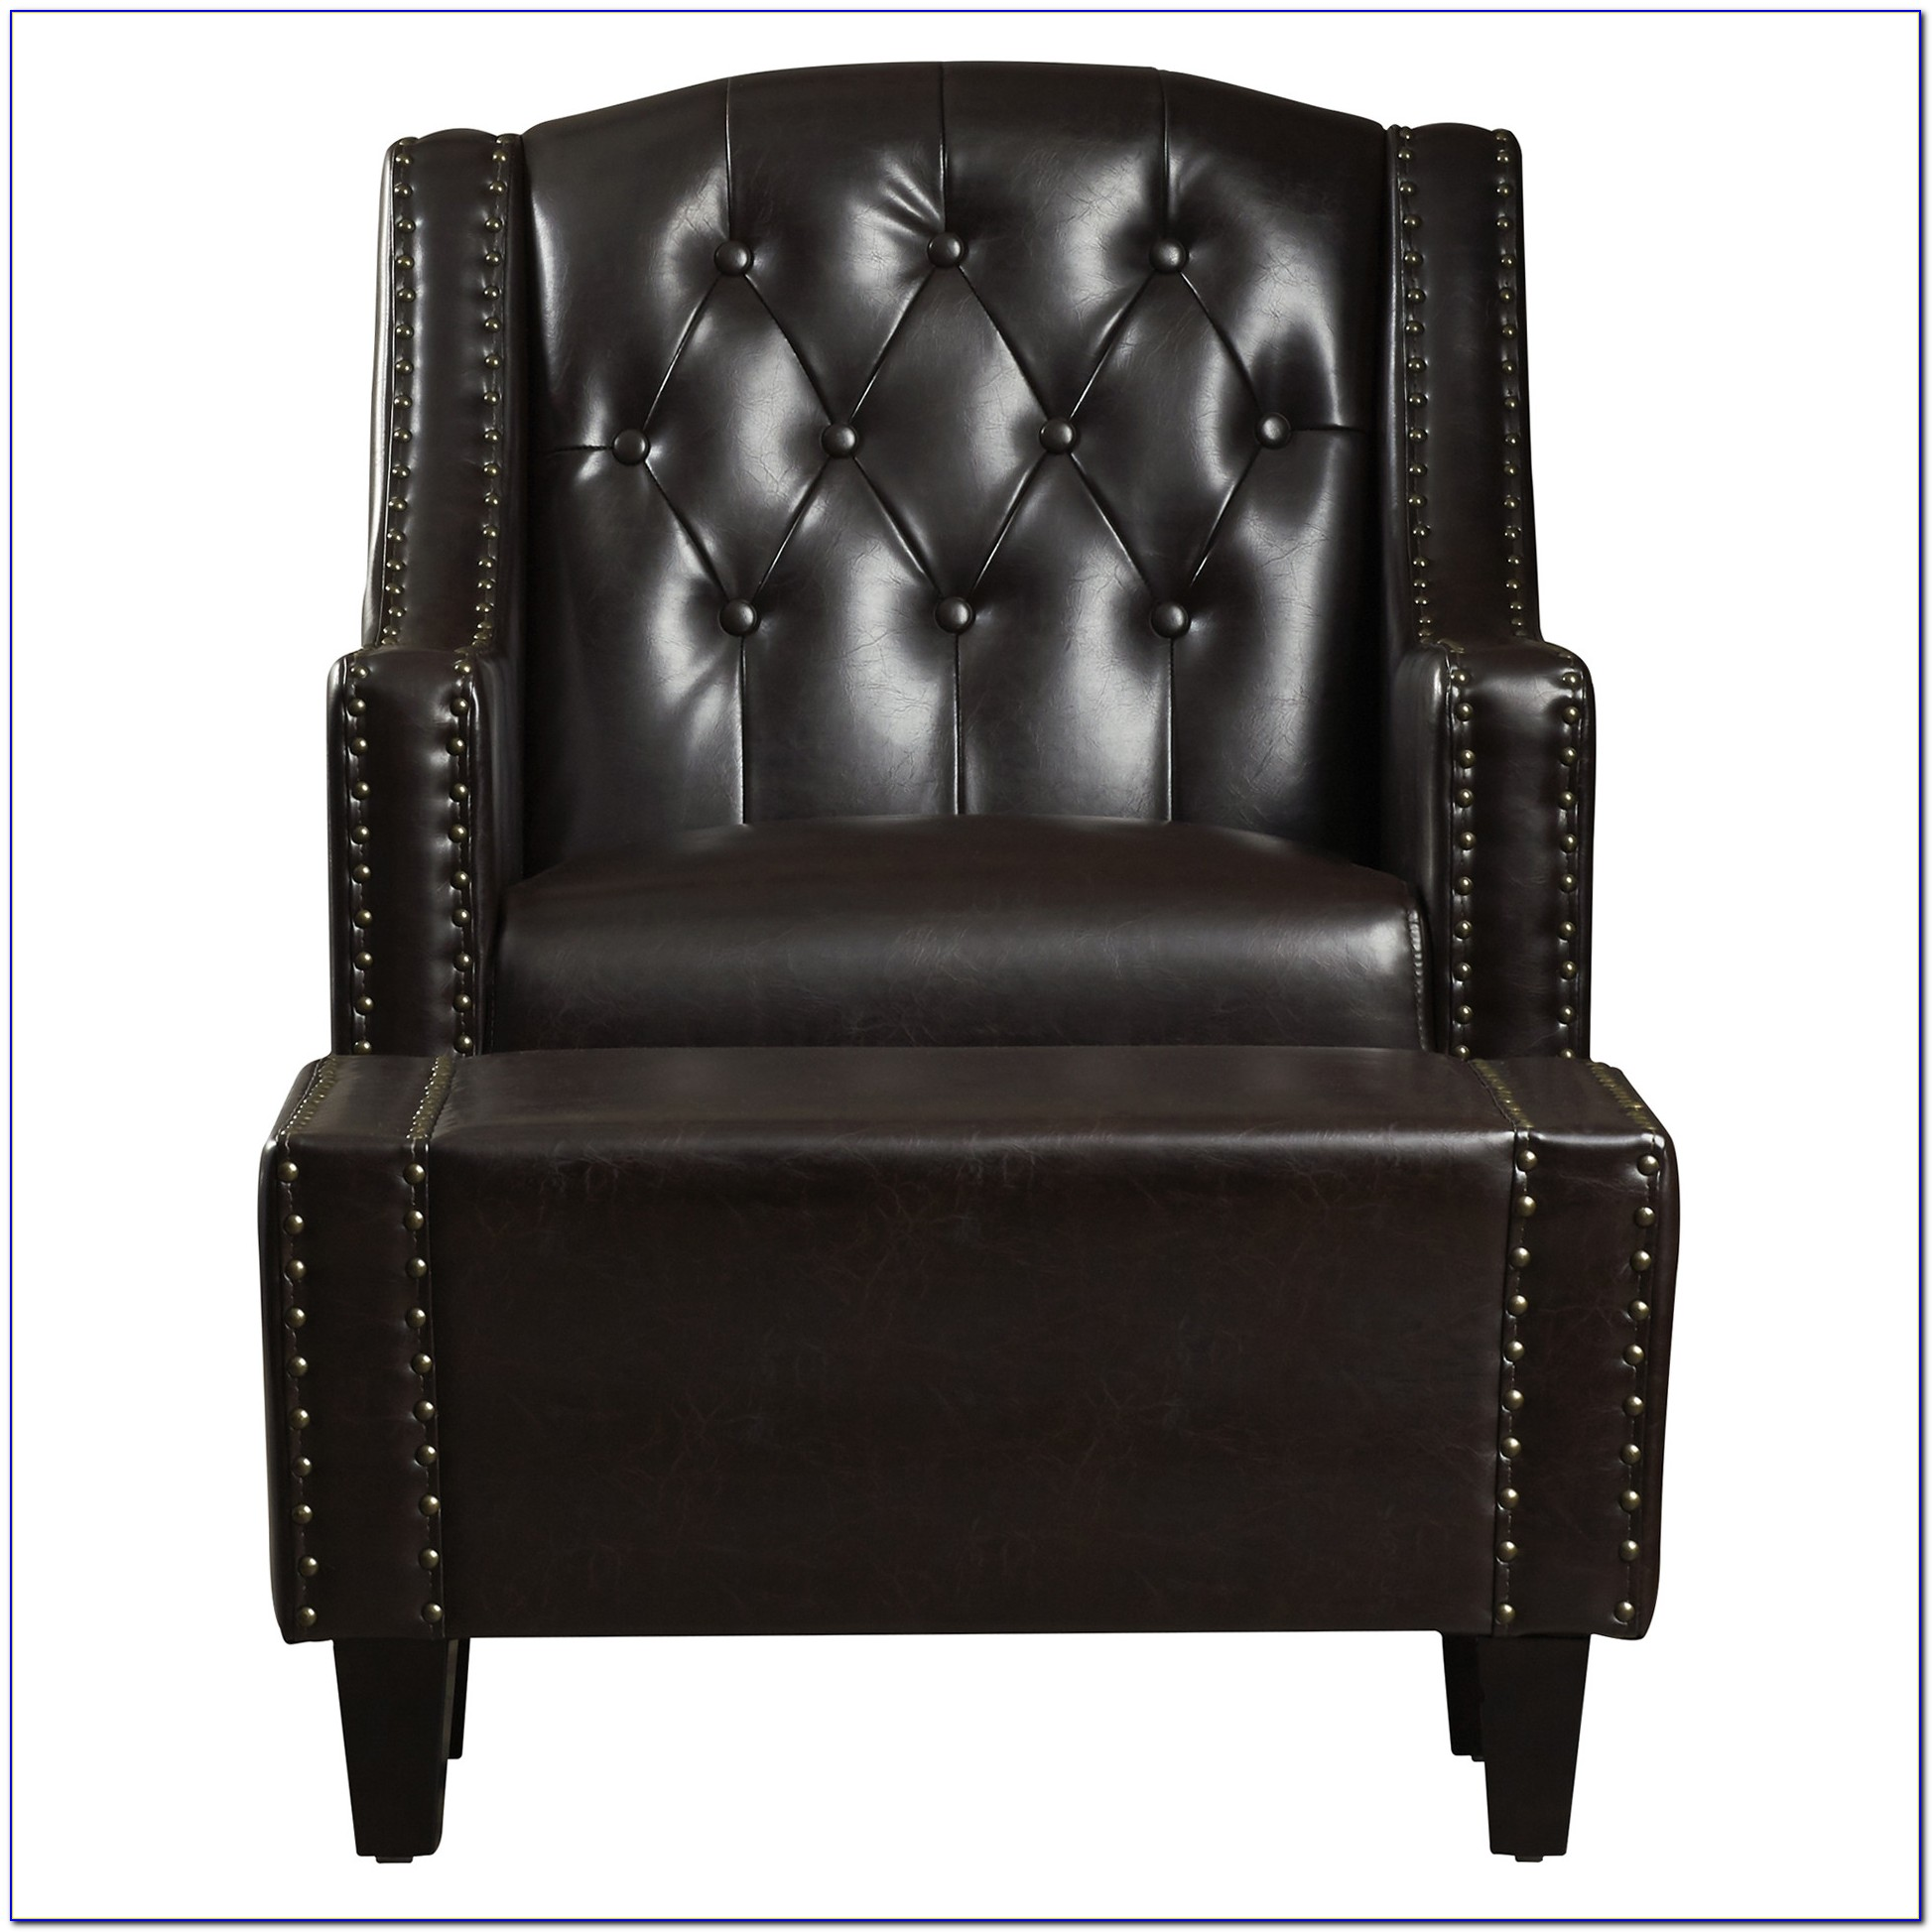 Leather Chair And Ottoman Macy's